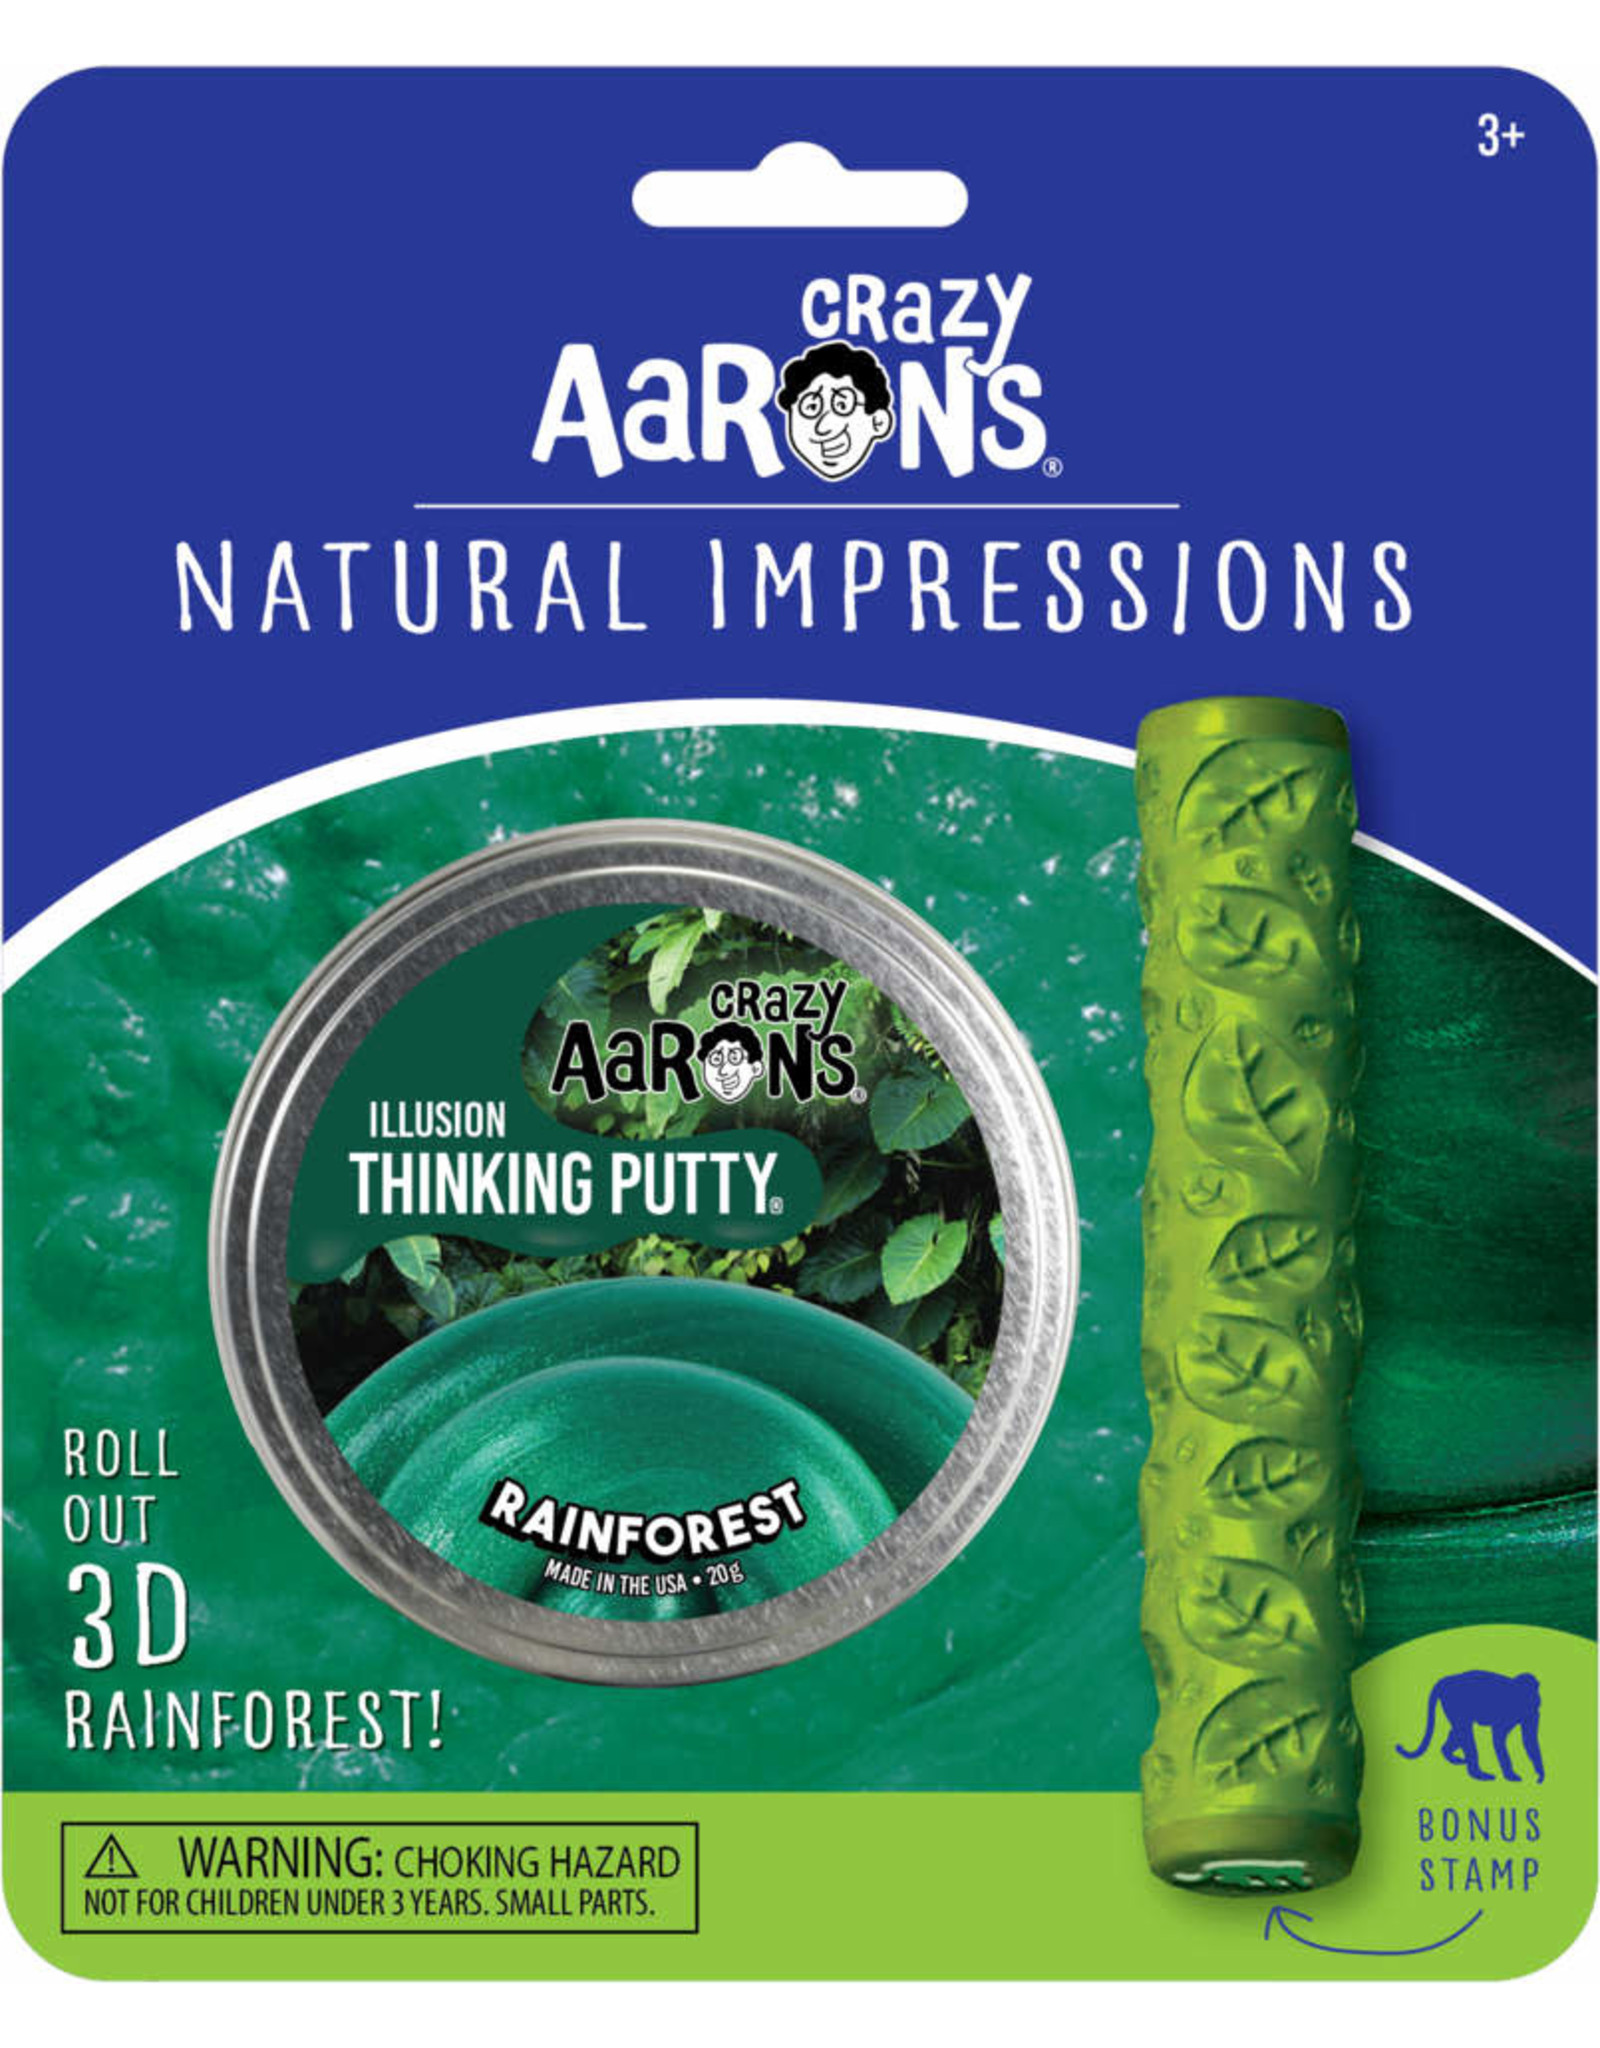 CRAZY AARON'S RAINFOREST PUTTY